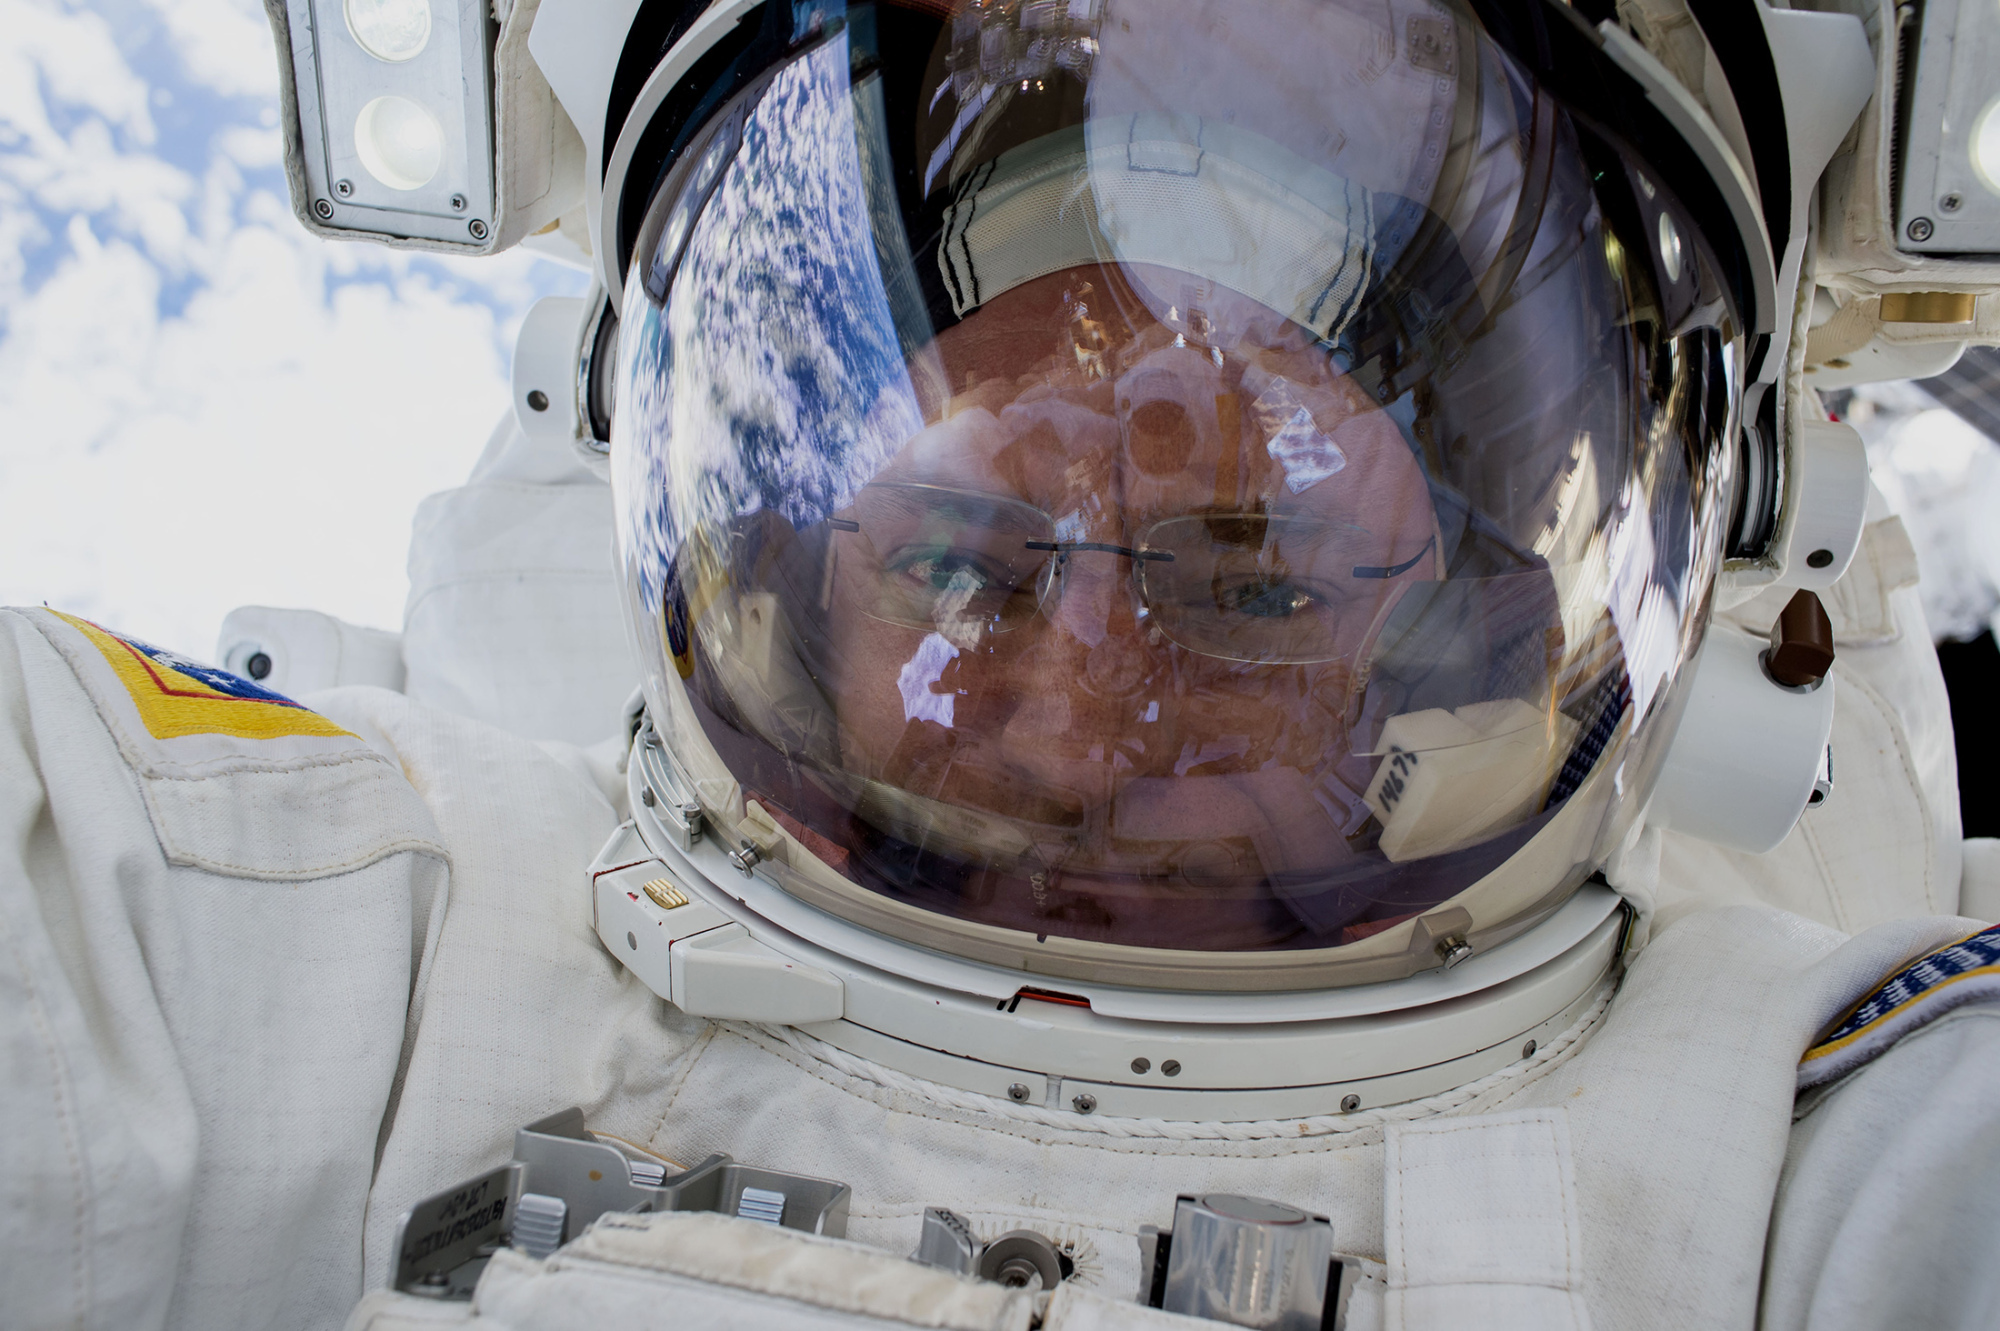 Spacewalk Selfie 2.0